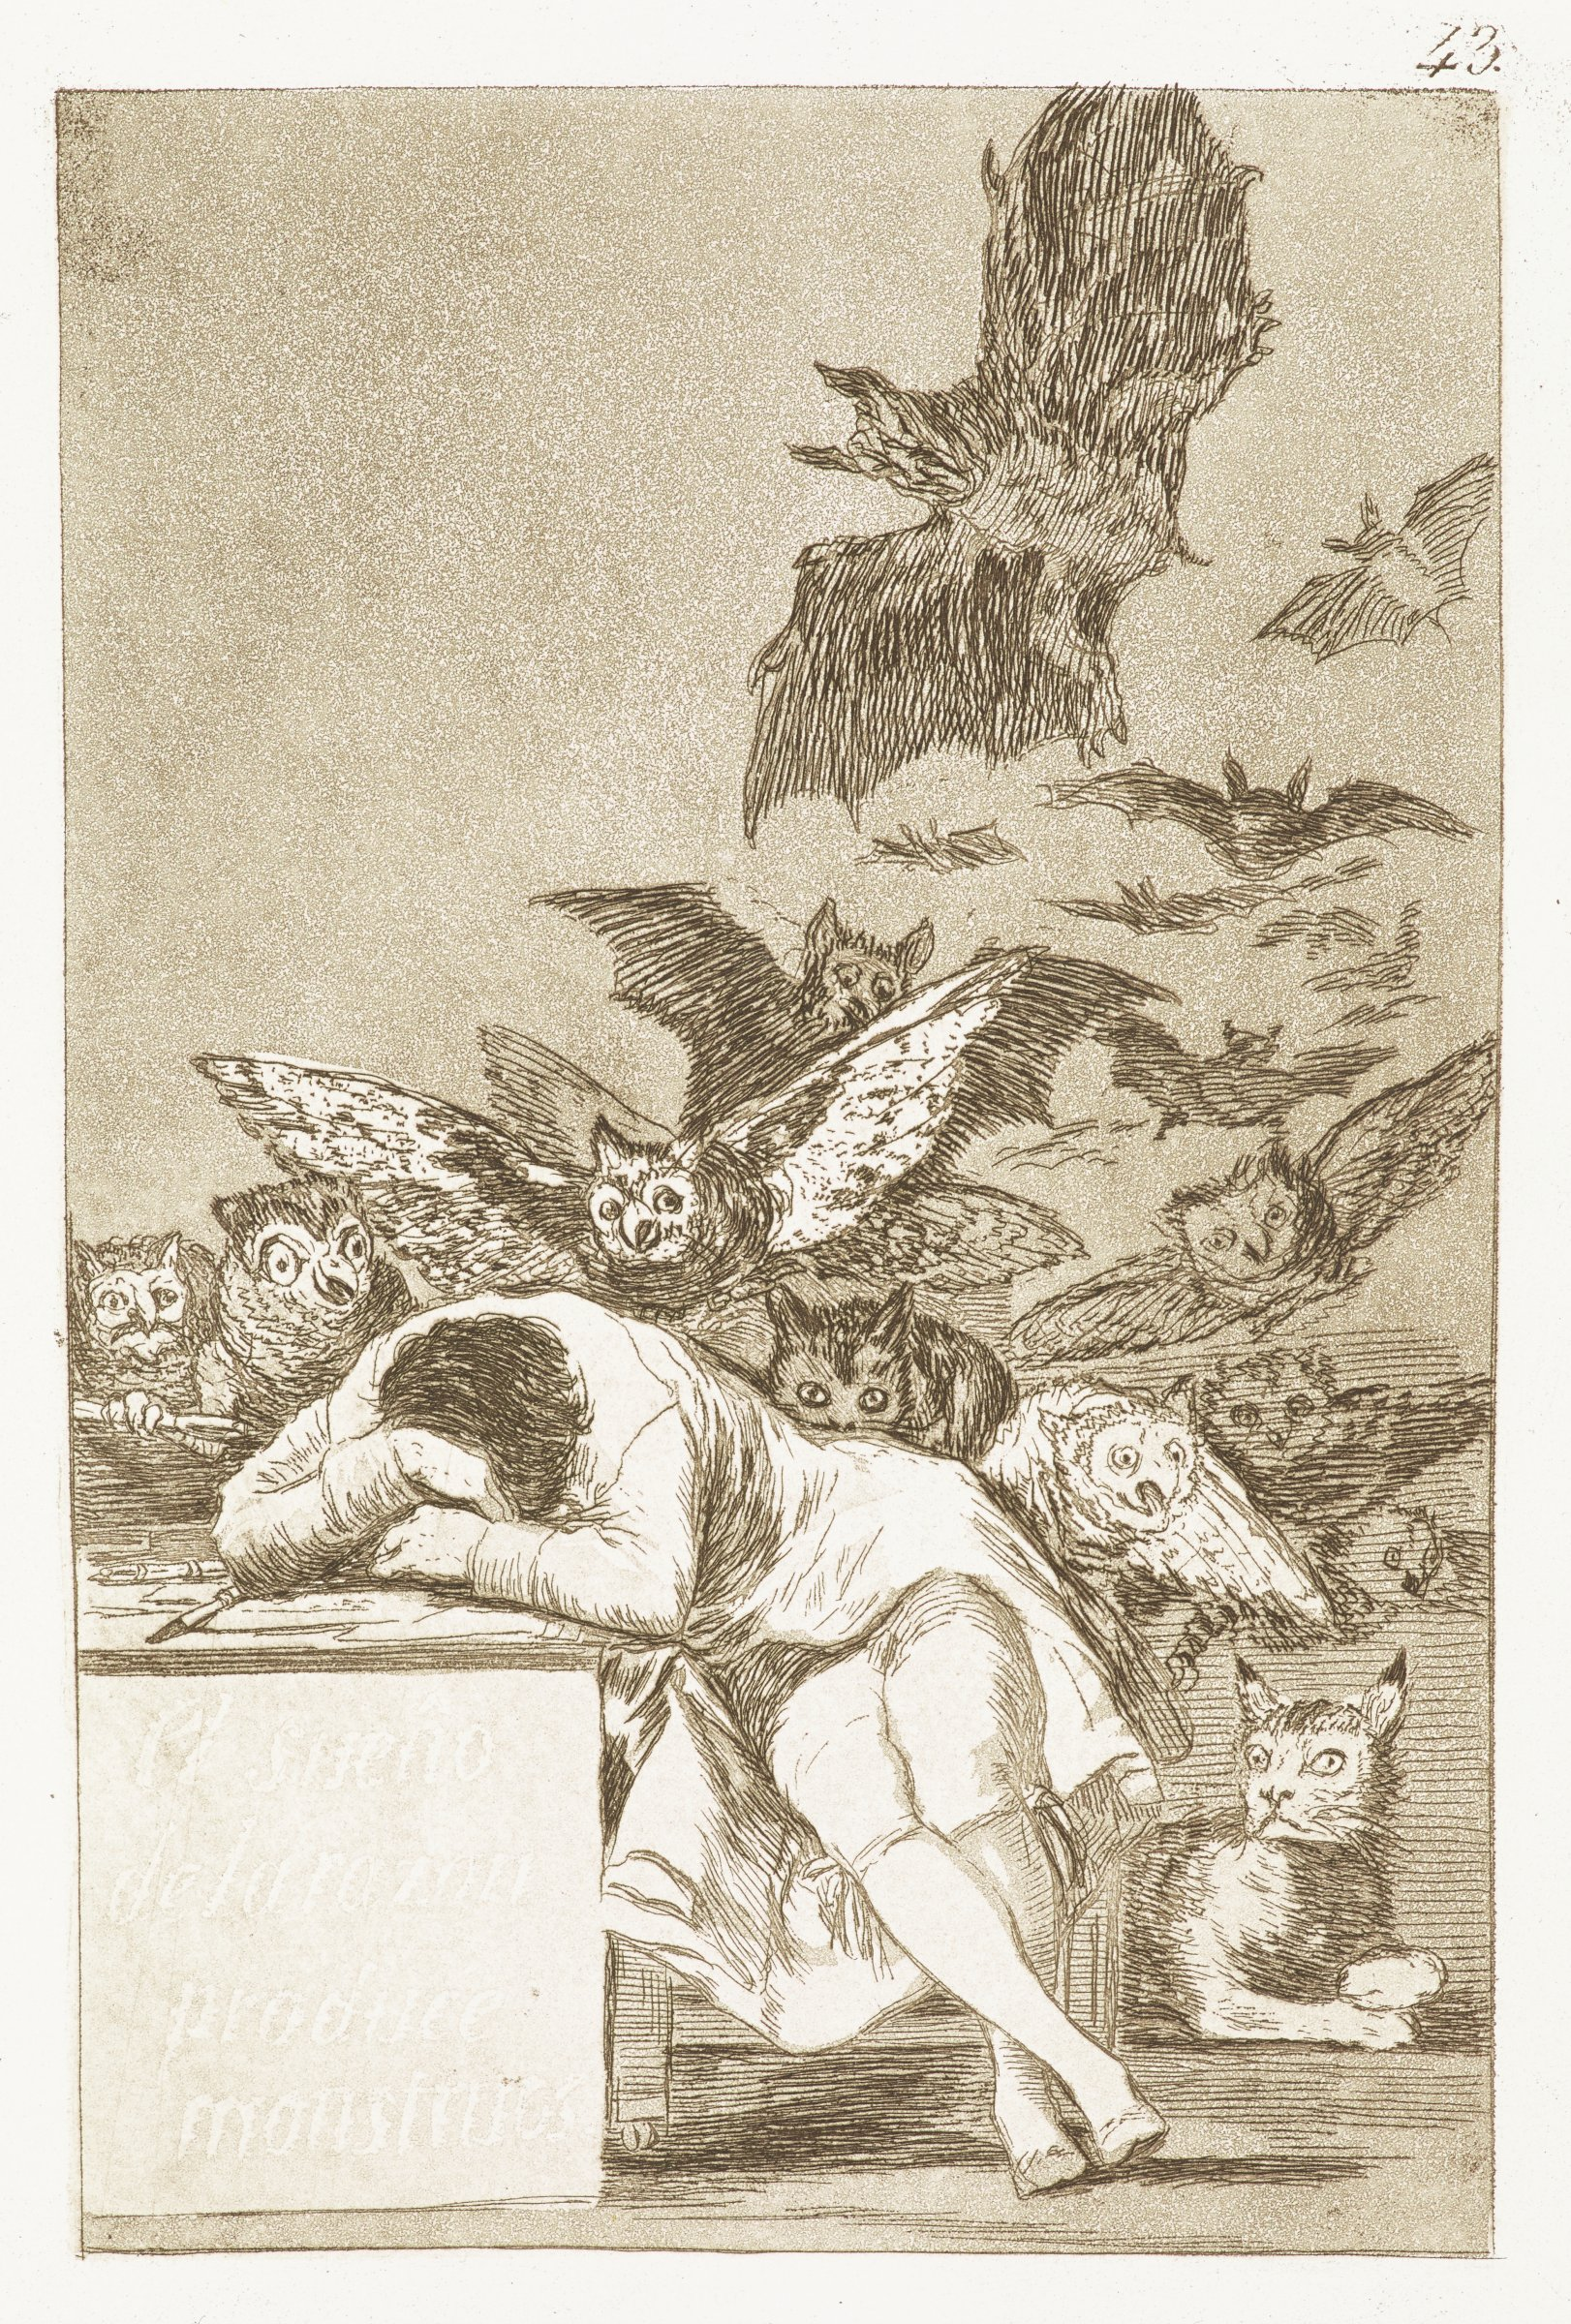 A man falls asleep on a desk. Various creatures fly in a swarm behind him, including bats and owls. A lynx lays in the floor near his feet.